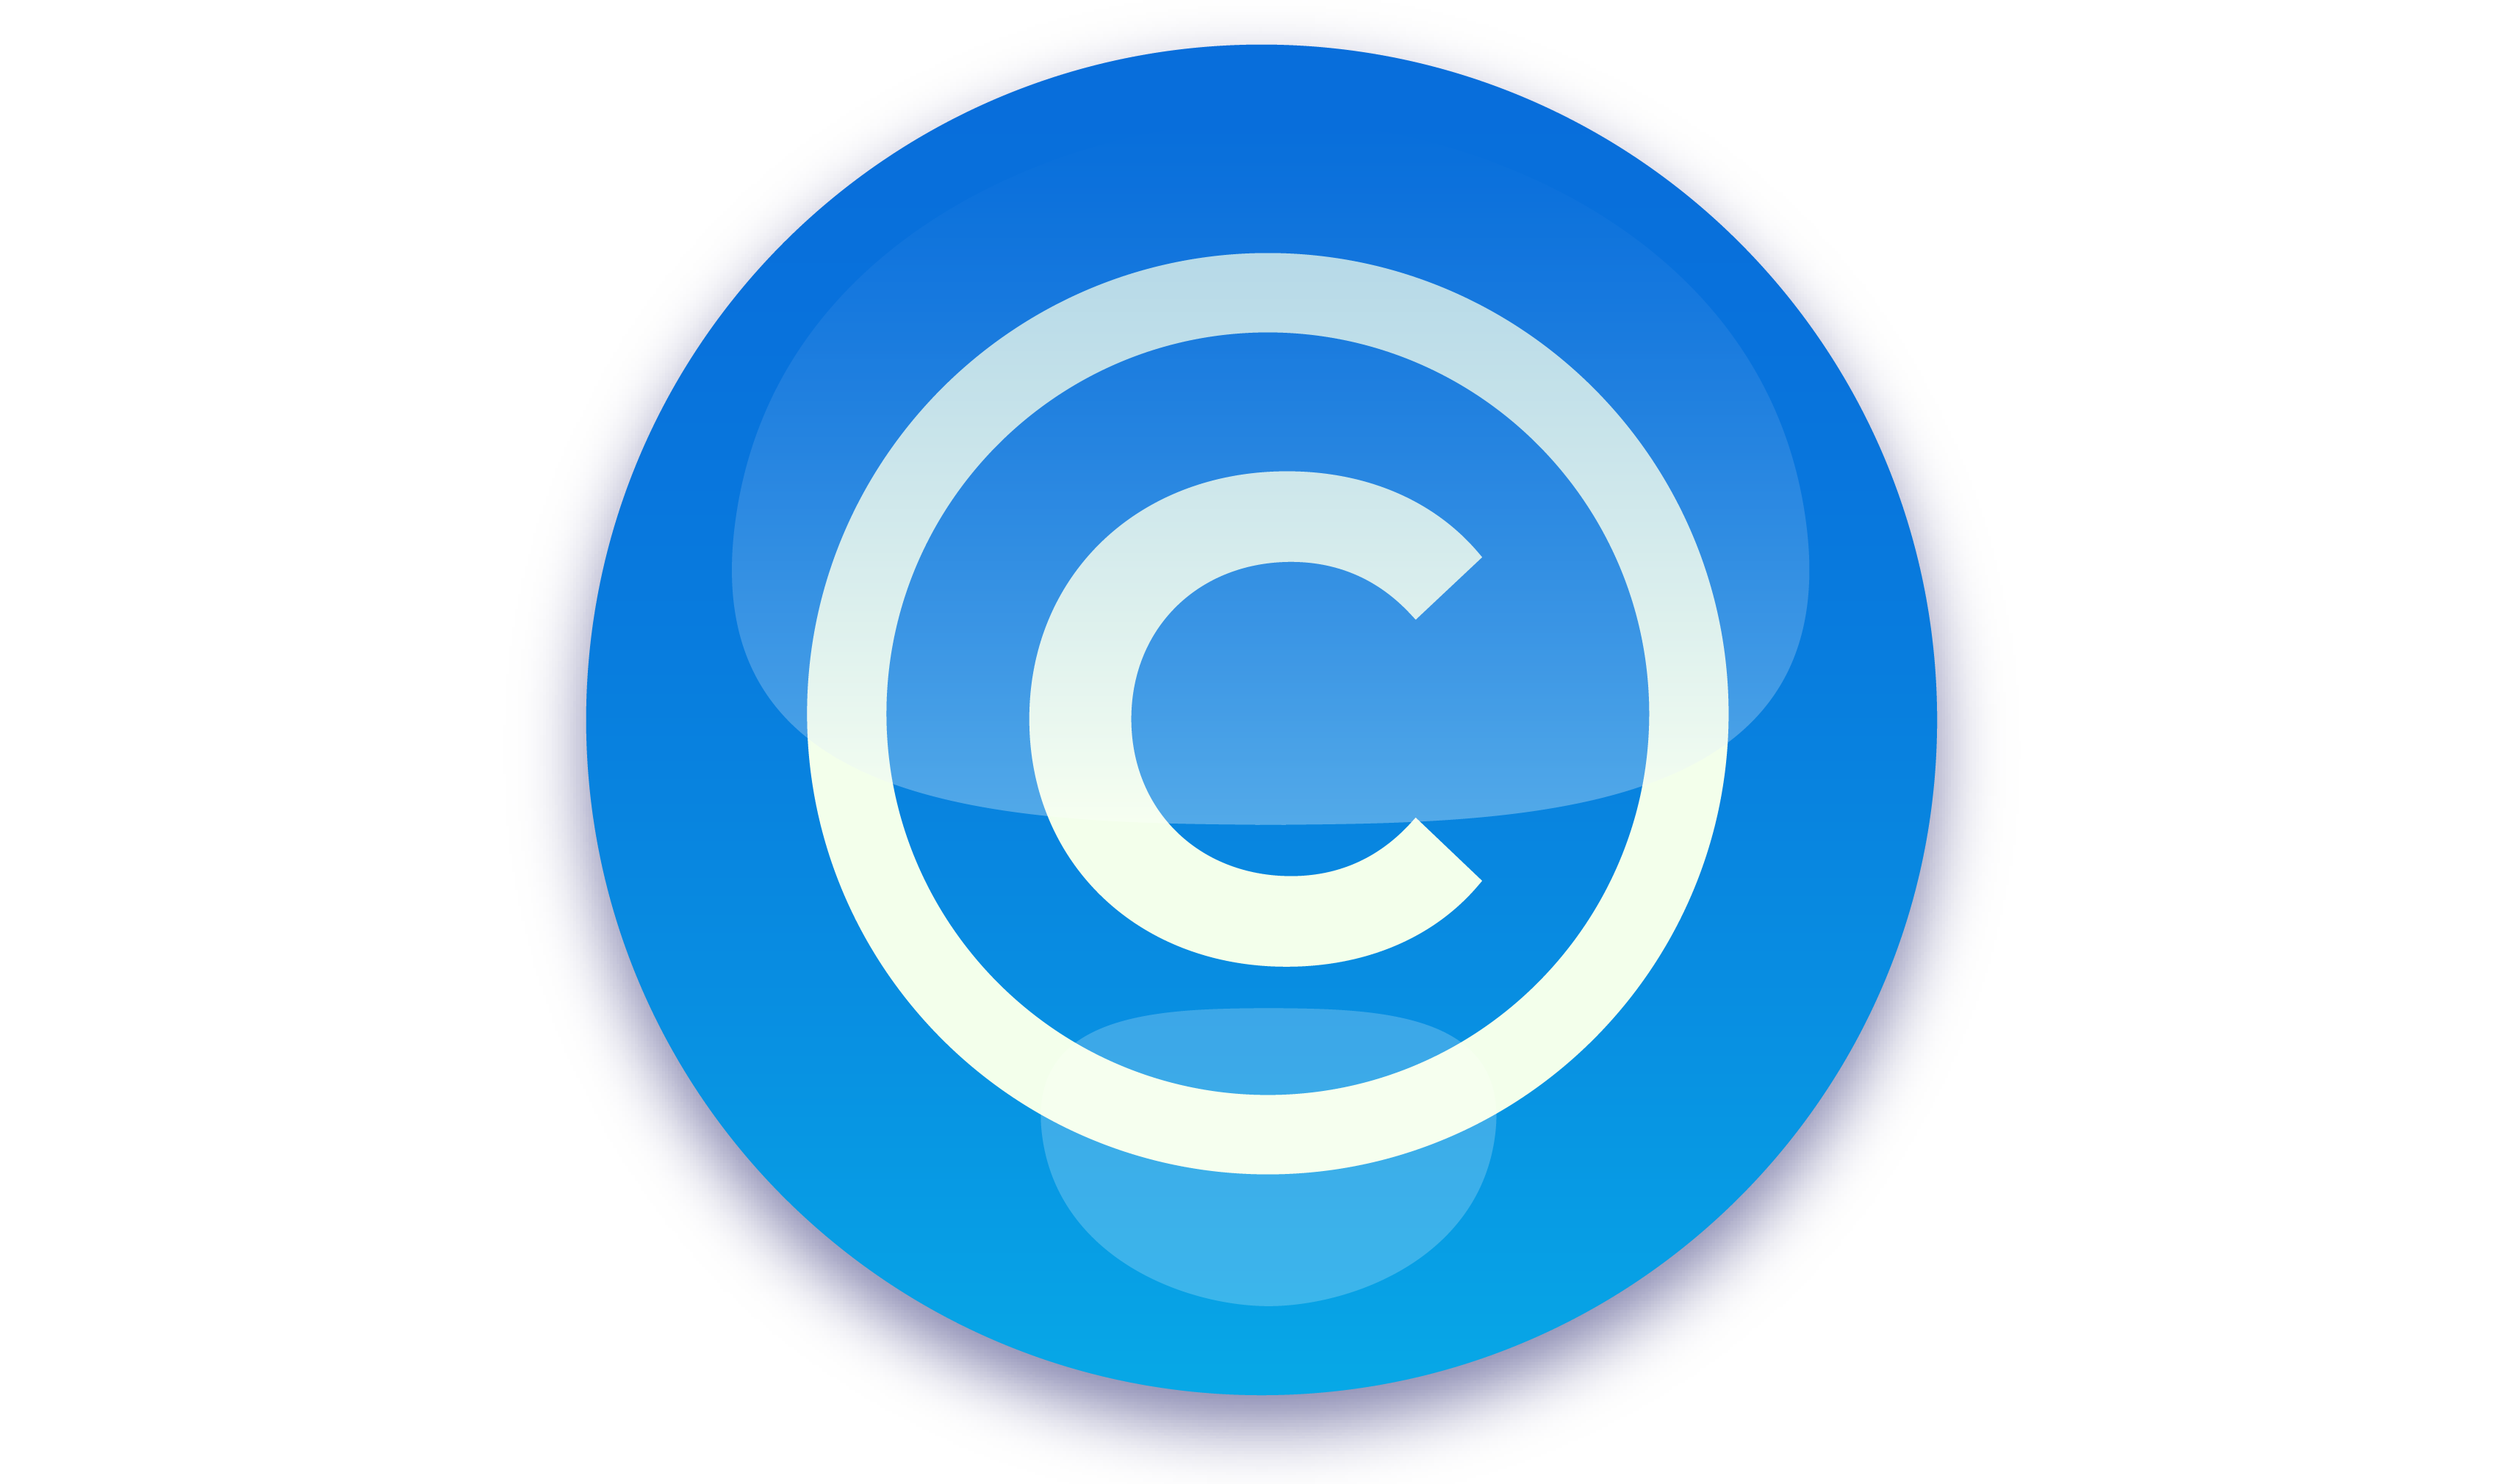 Searates Copyright on copyright symbol, creative commons, intangible asset, all rights reserved, copyright infringement, trade secret, open source, fair use, intellectual property, public domain, file sharing,